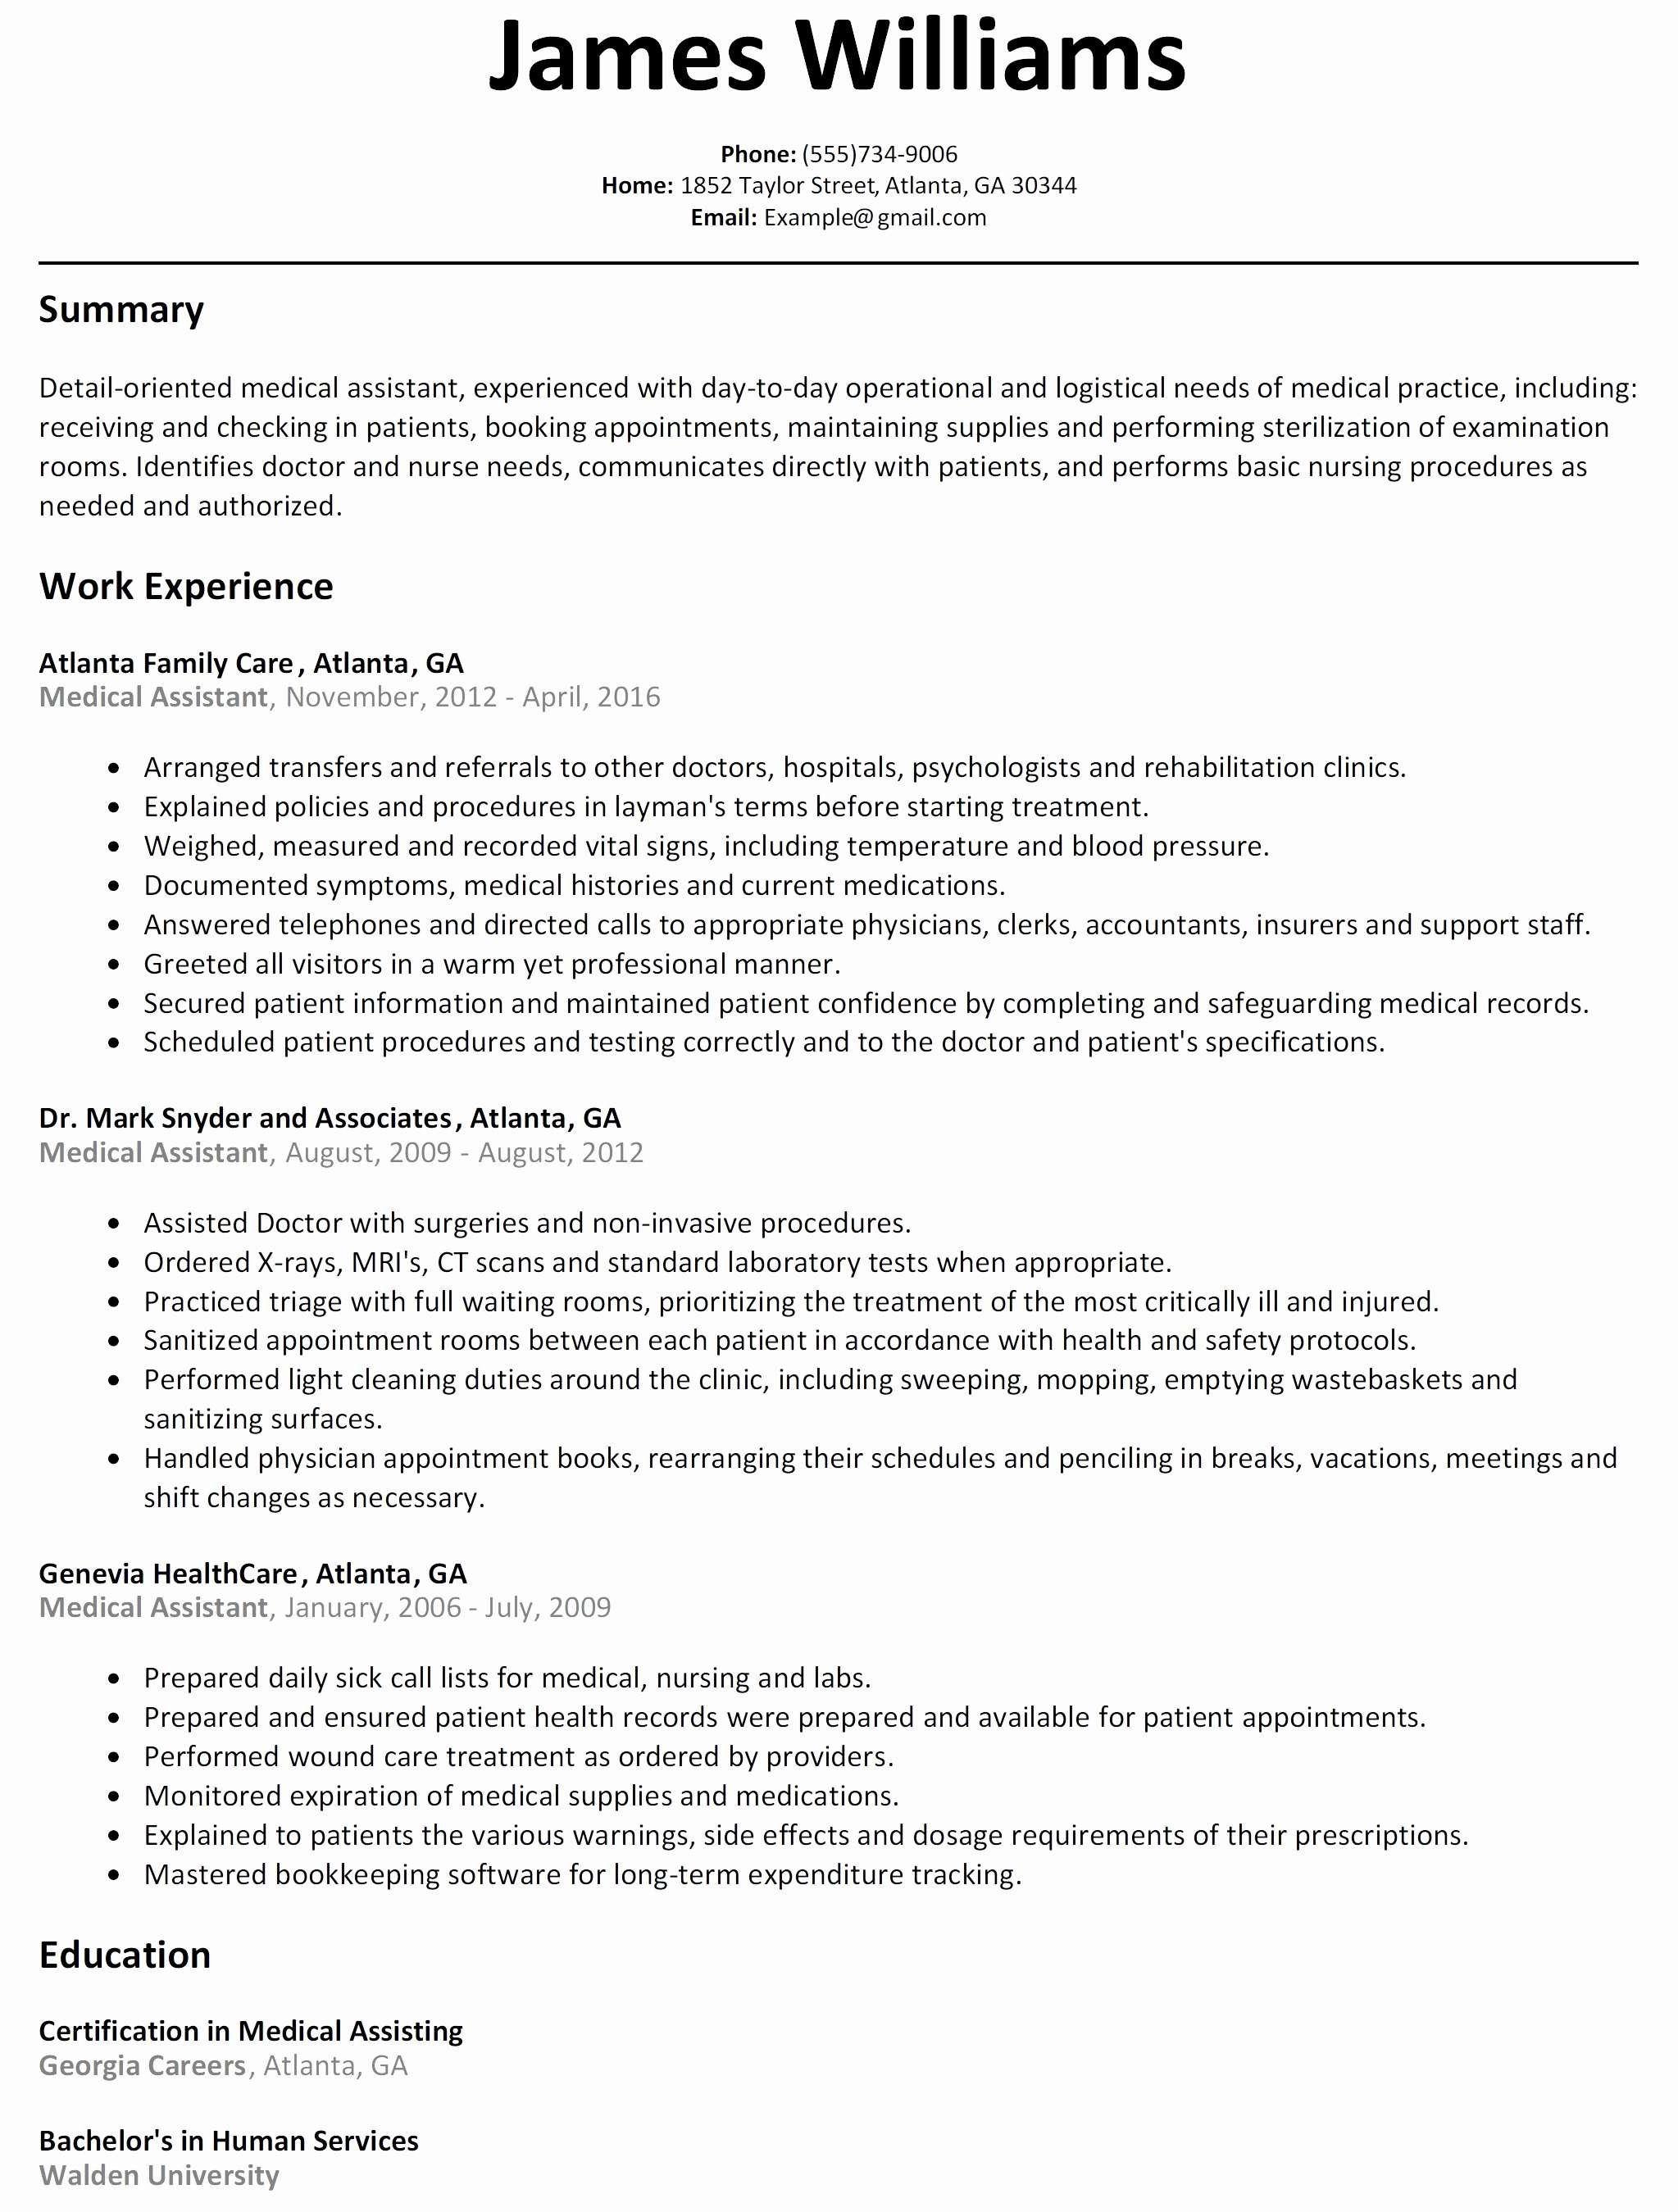 indeed cover letter template examples letter templates